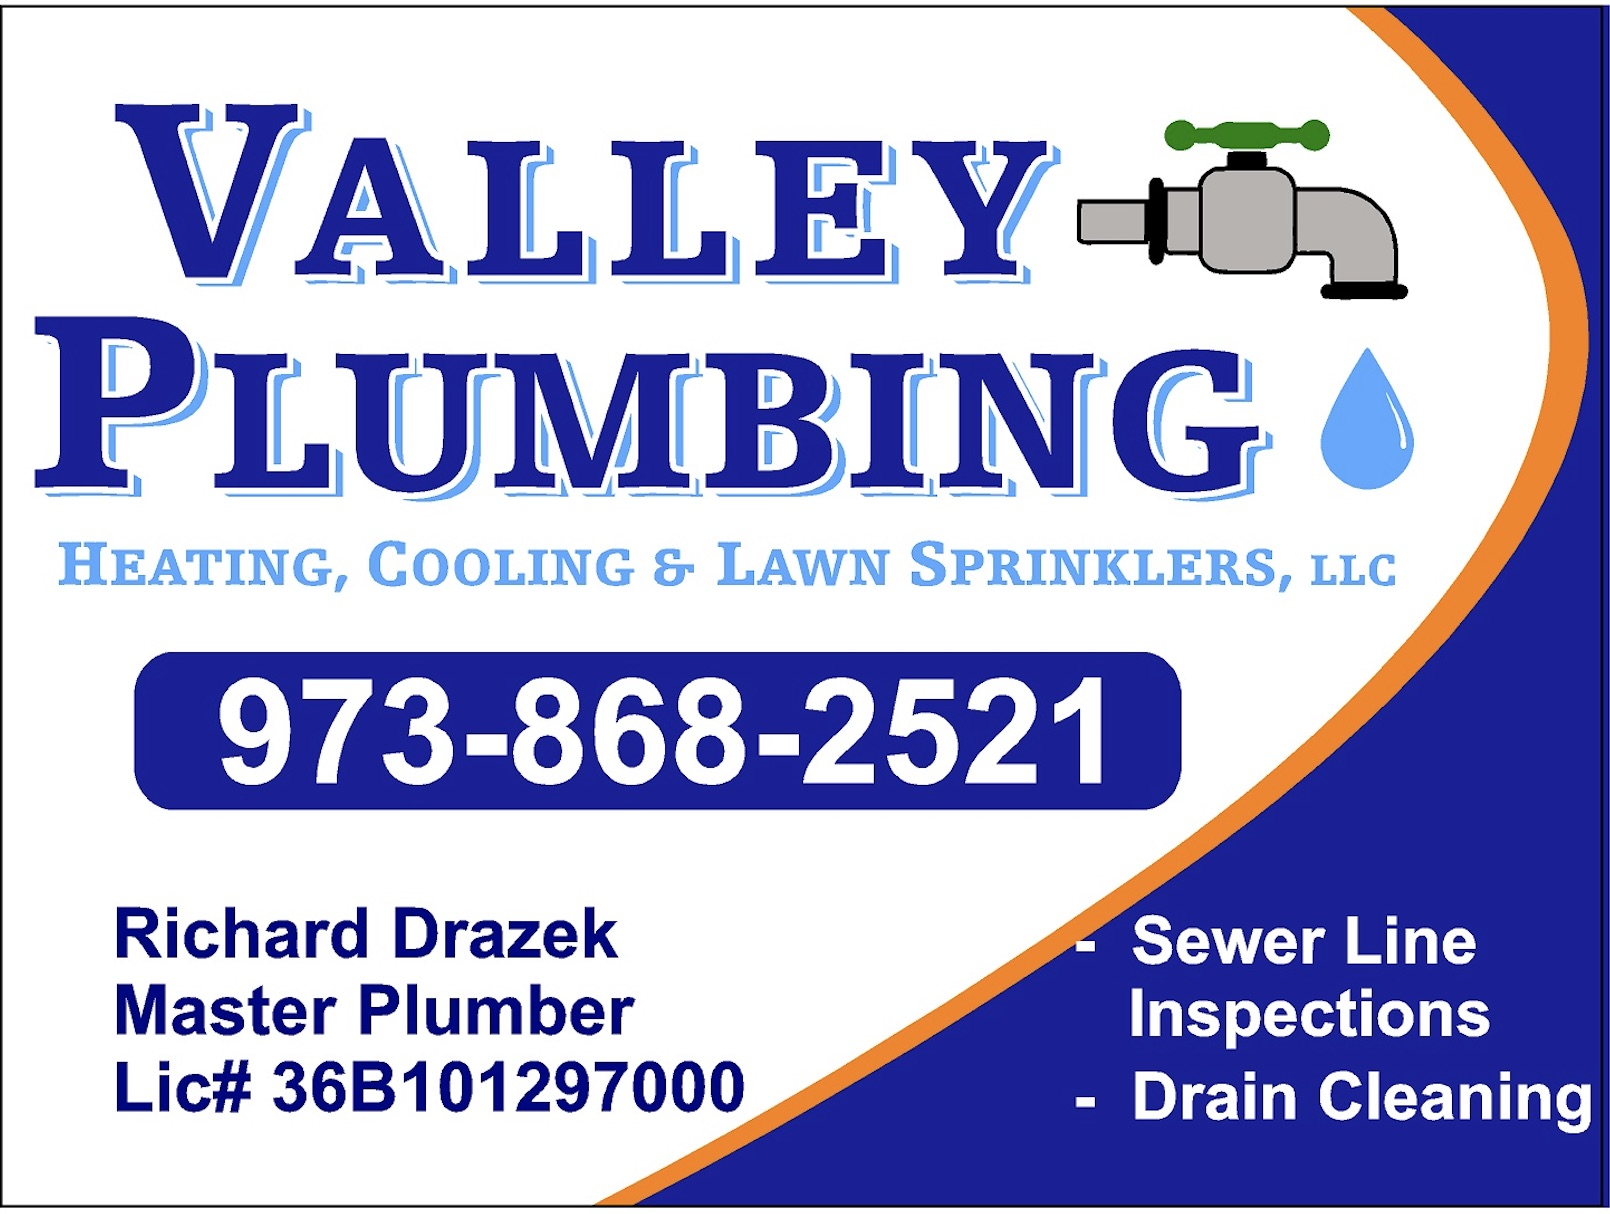 Valley Plumbing, Heating, Cooling and Lawn Sprinklers, LLC.